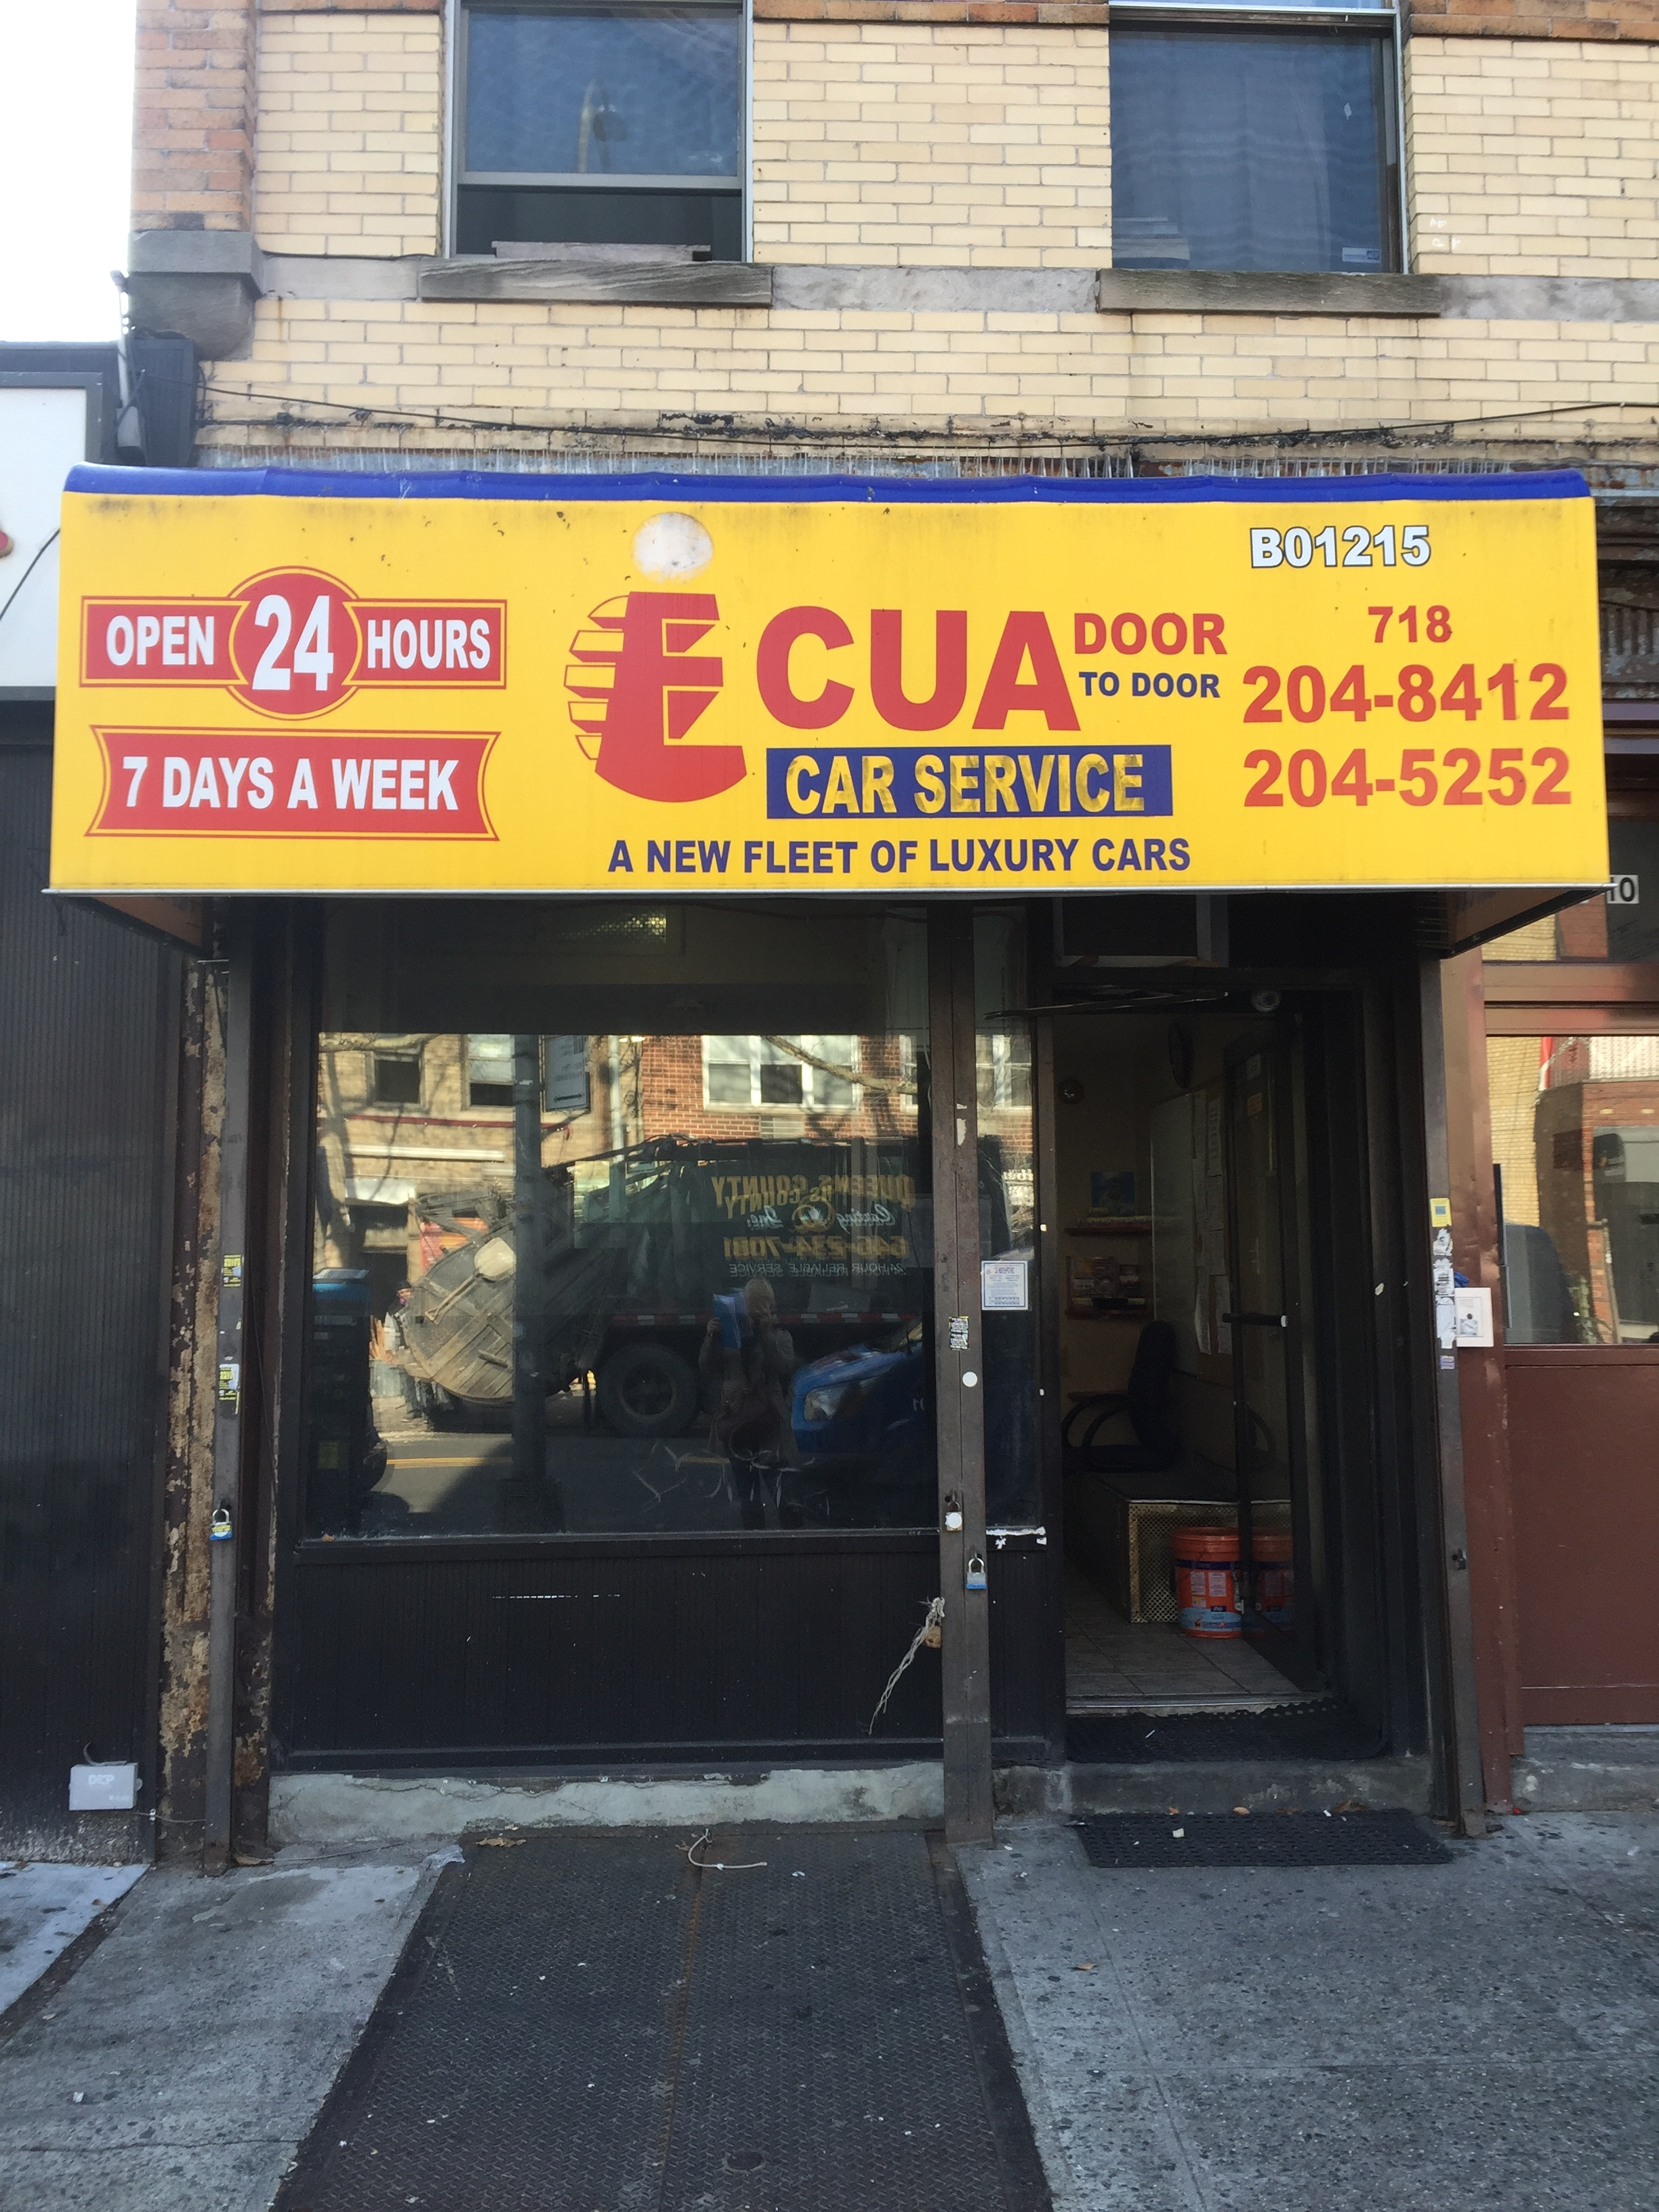 EQUA CAR AND LIMO SERVICE in East Astoria, NY, meet the OWNER BERTAH SOLIS